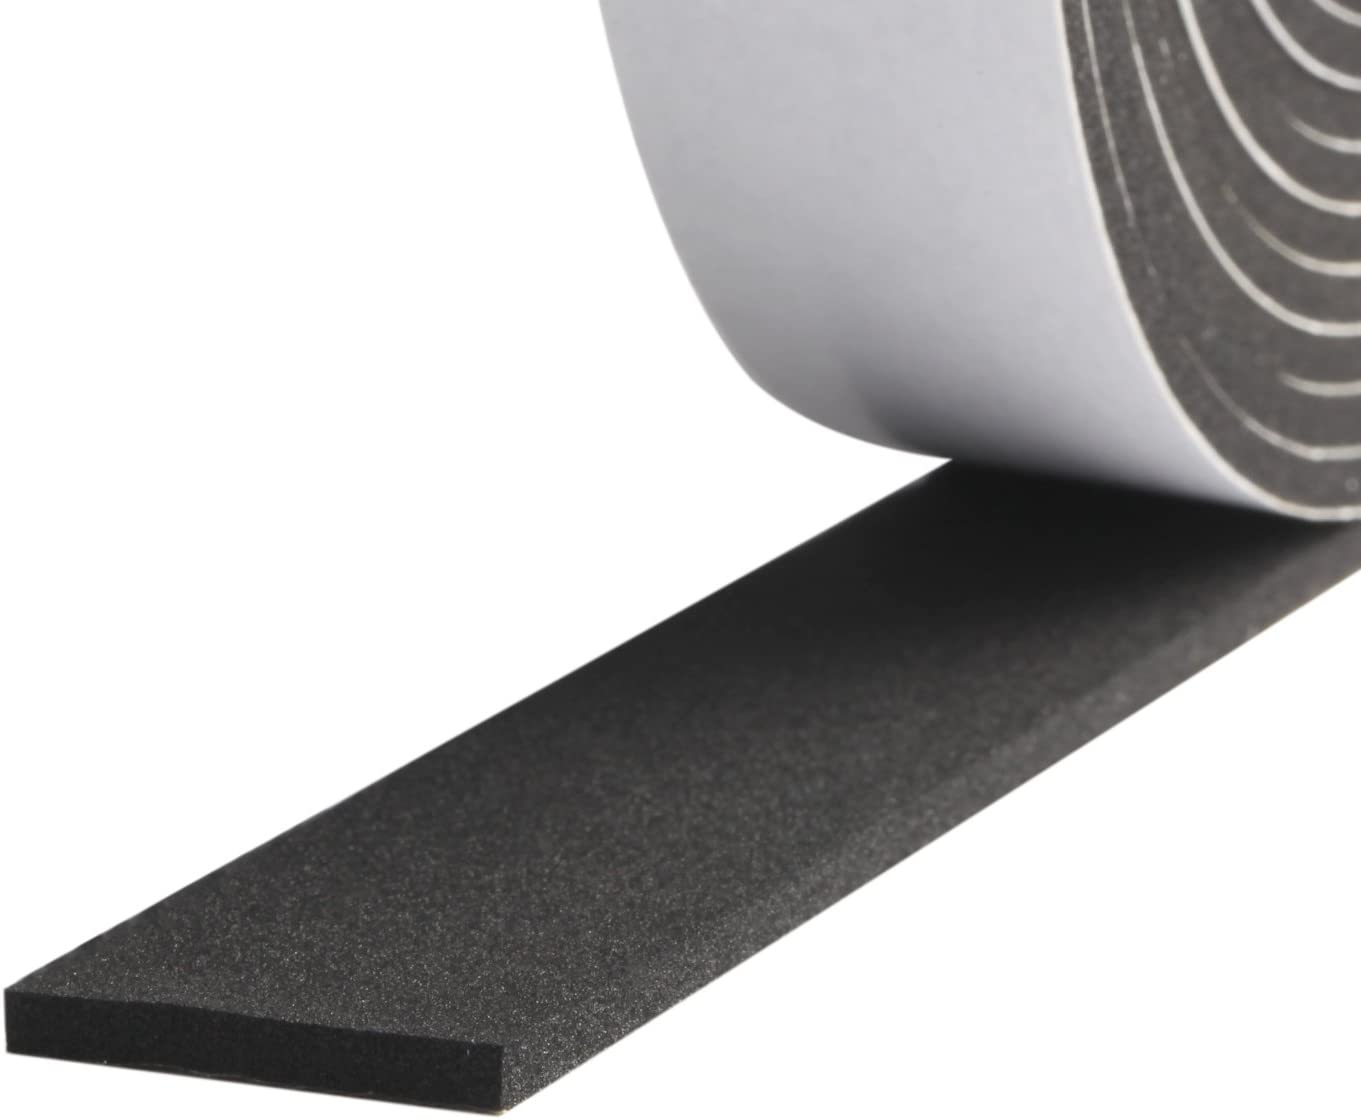 Foam Strips with Adhesive-2 Rolls, 1 Inch Wide X 1/8 Inch Thick High Density Soundproofing Door Insulation AC Unit Weather Seal Total 33 Feet Long(16.5ft x 2 Rolls)